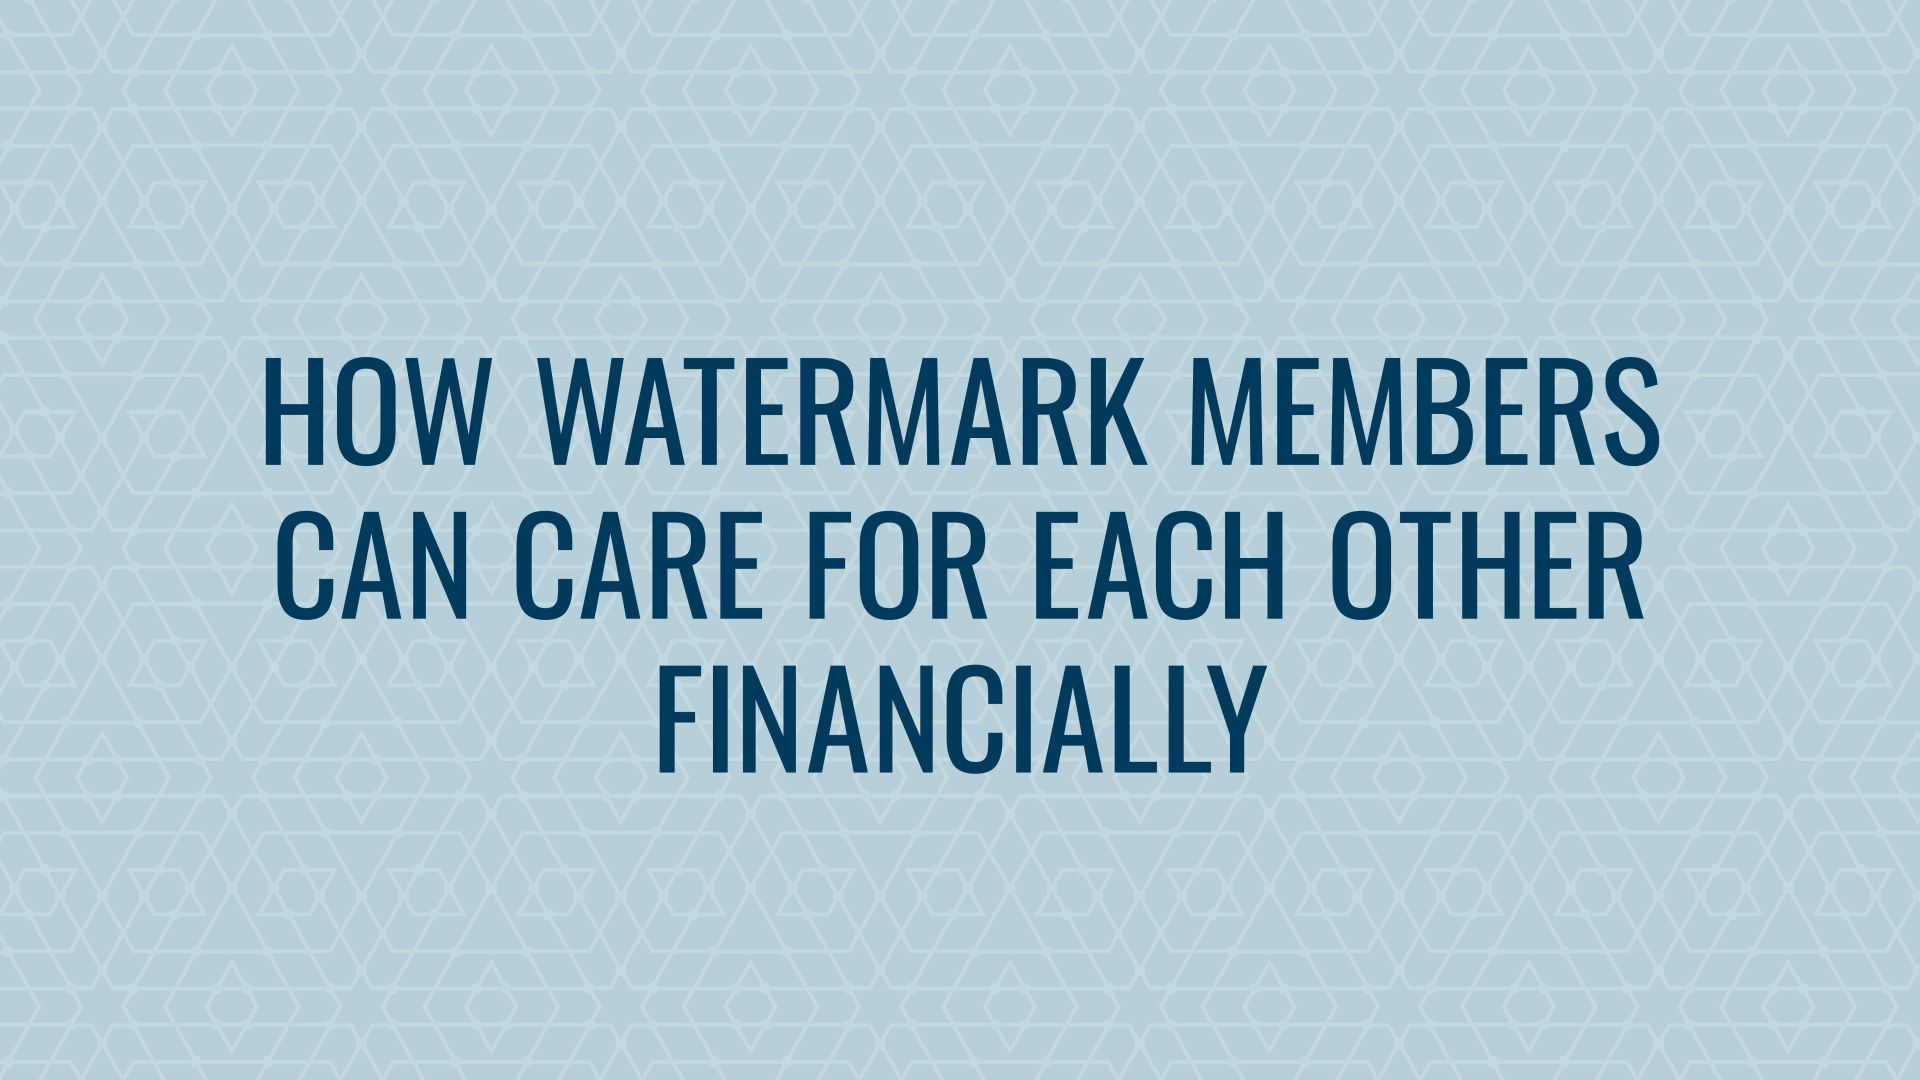 Watermark Members in Financial Need Hero Image